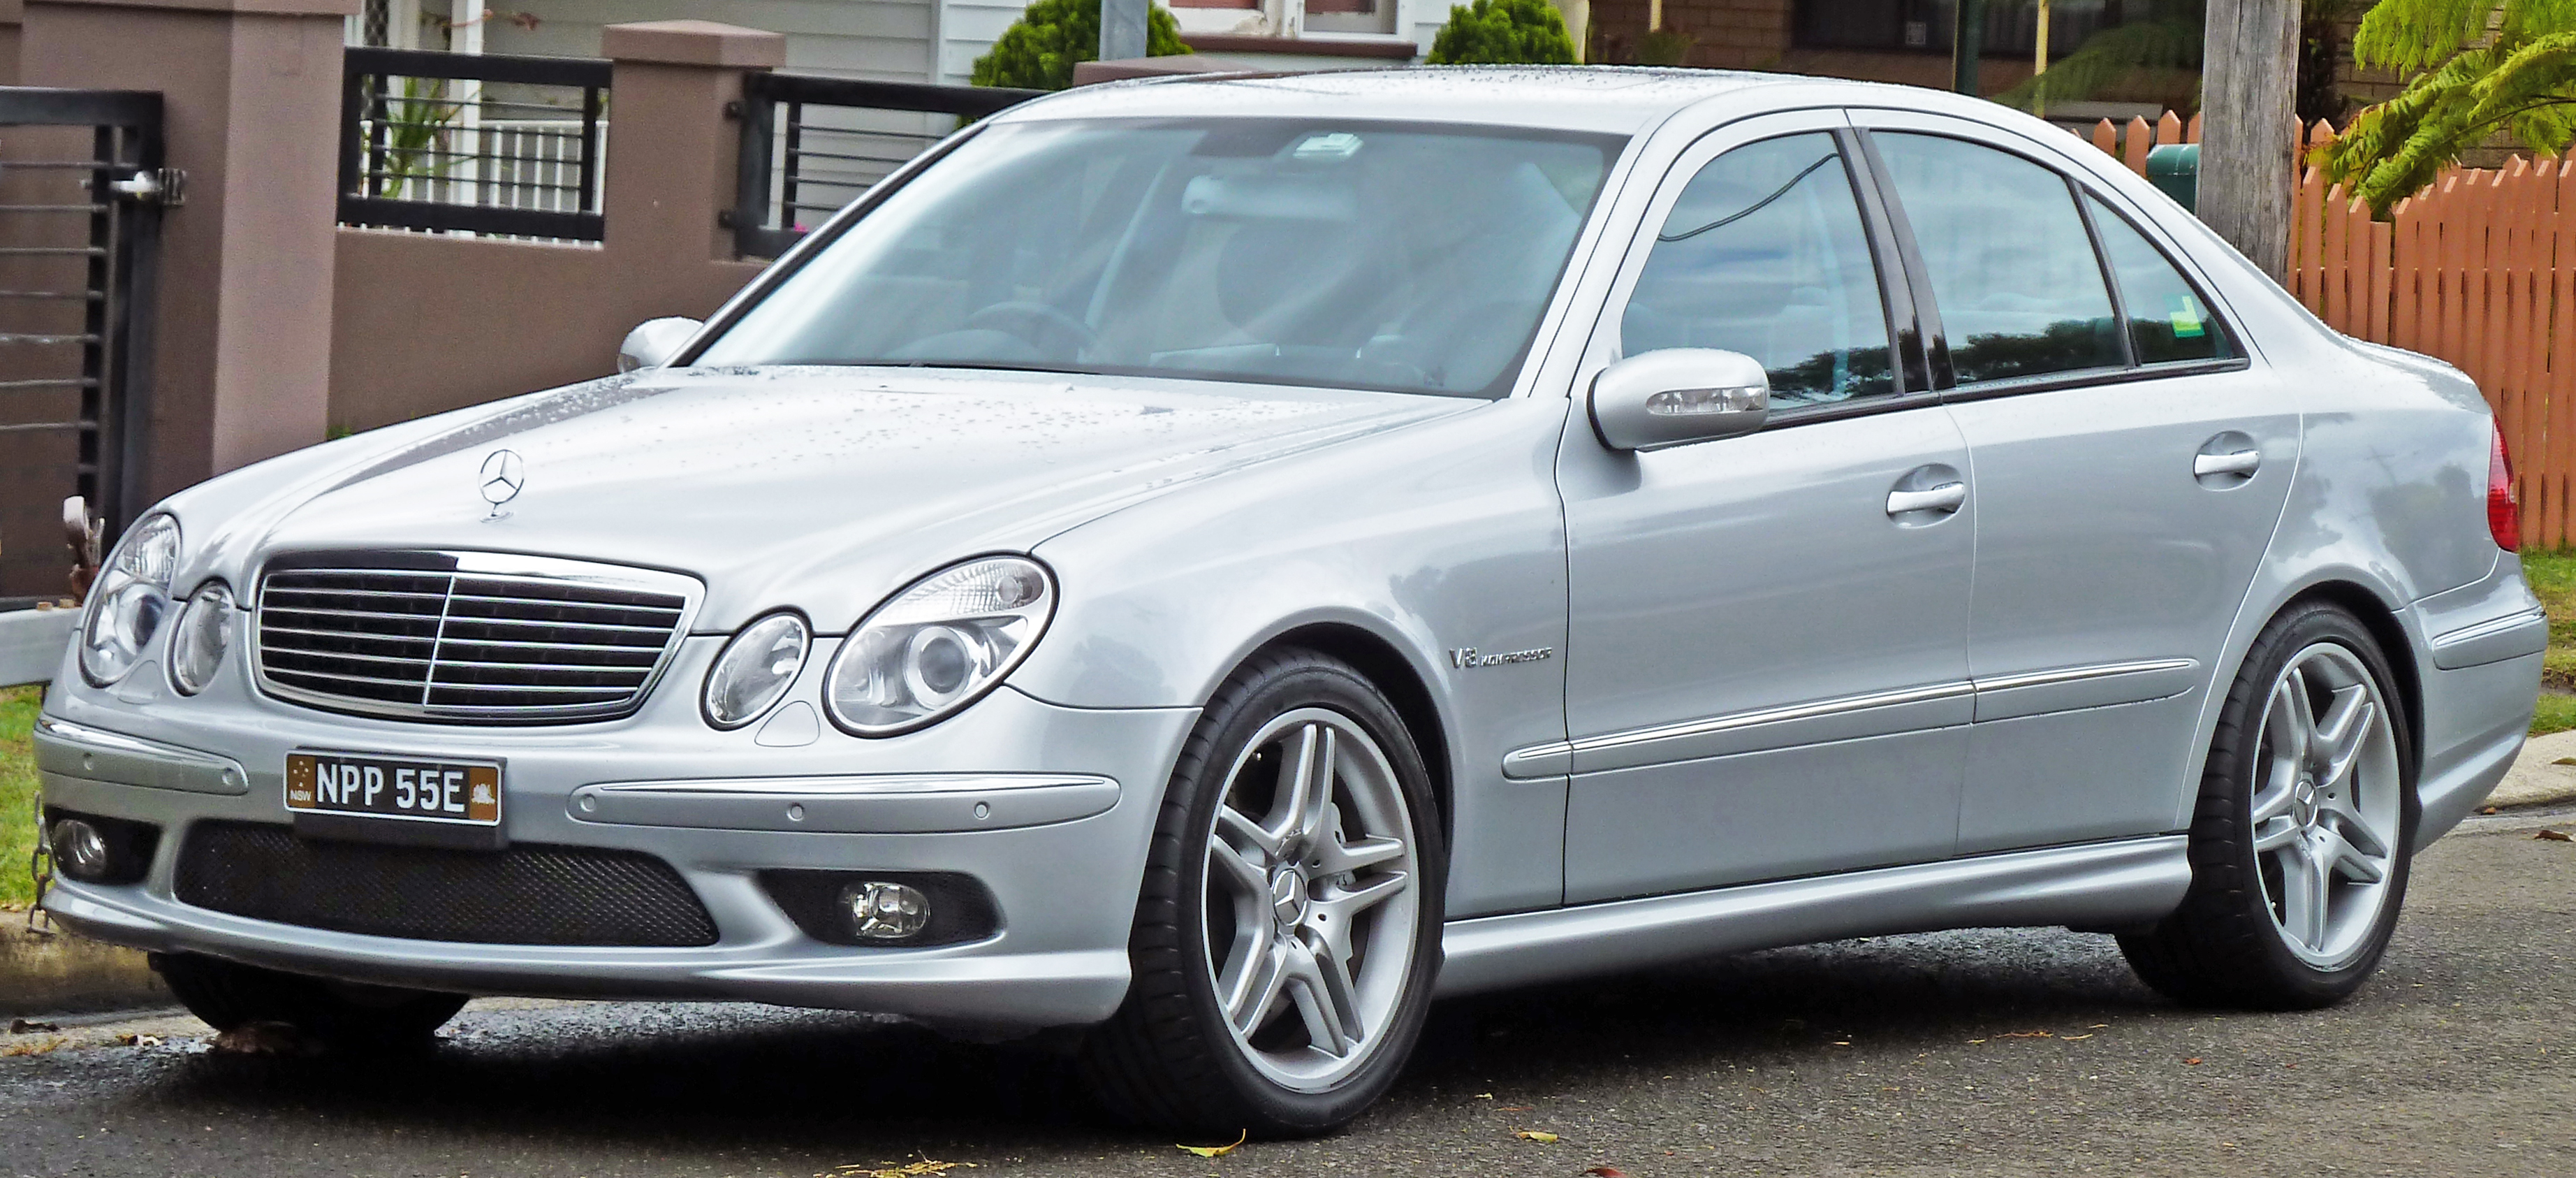 Mercedes Benz Saloon Uk